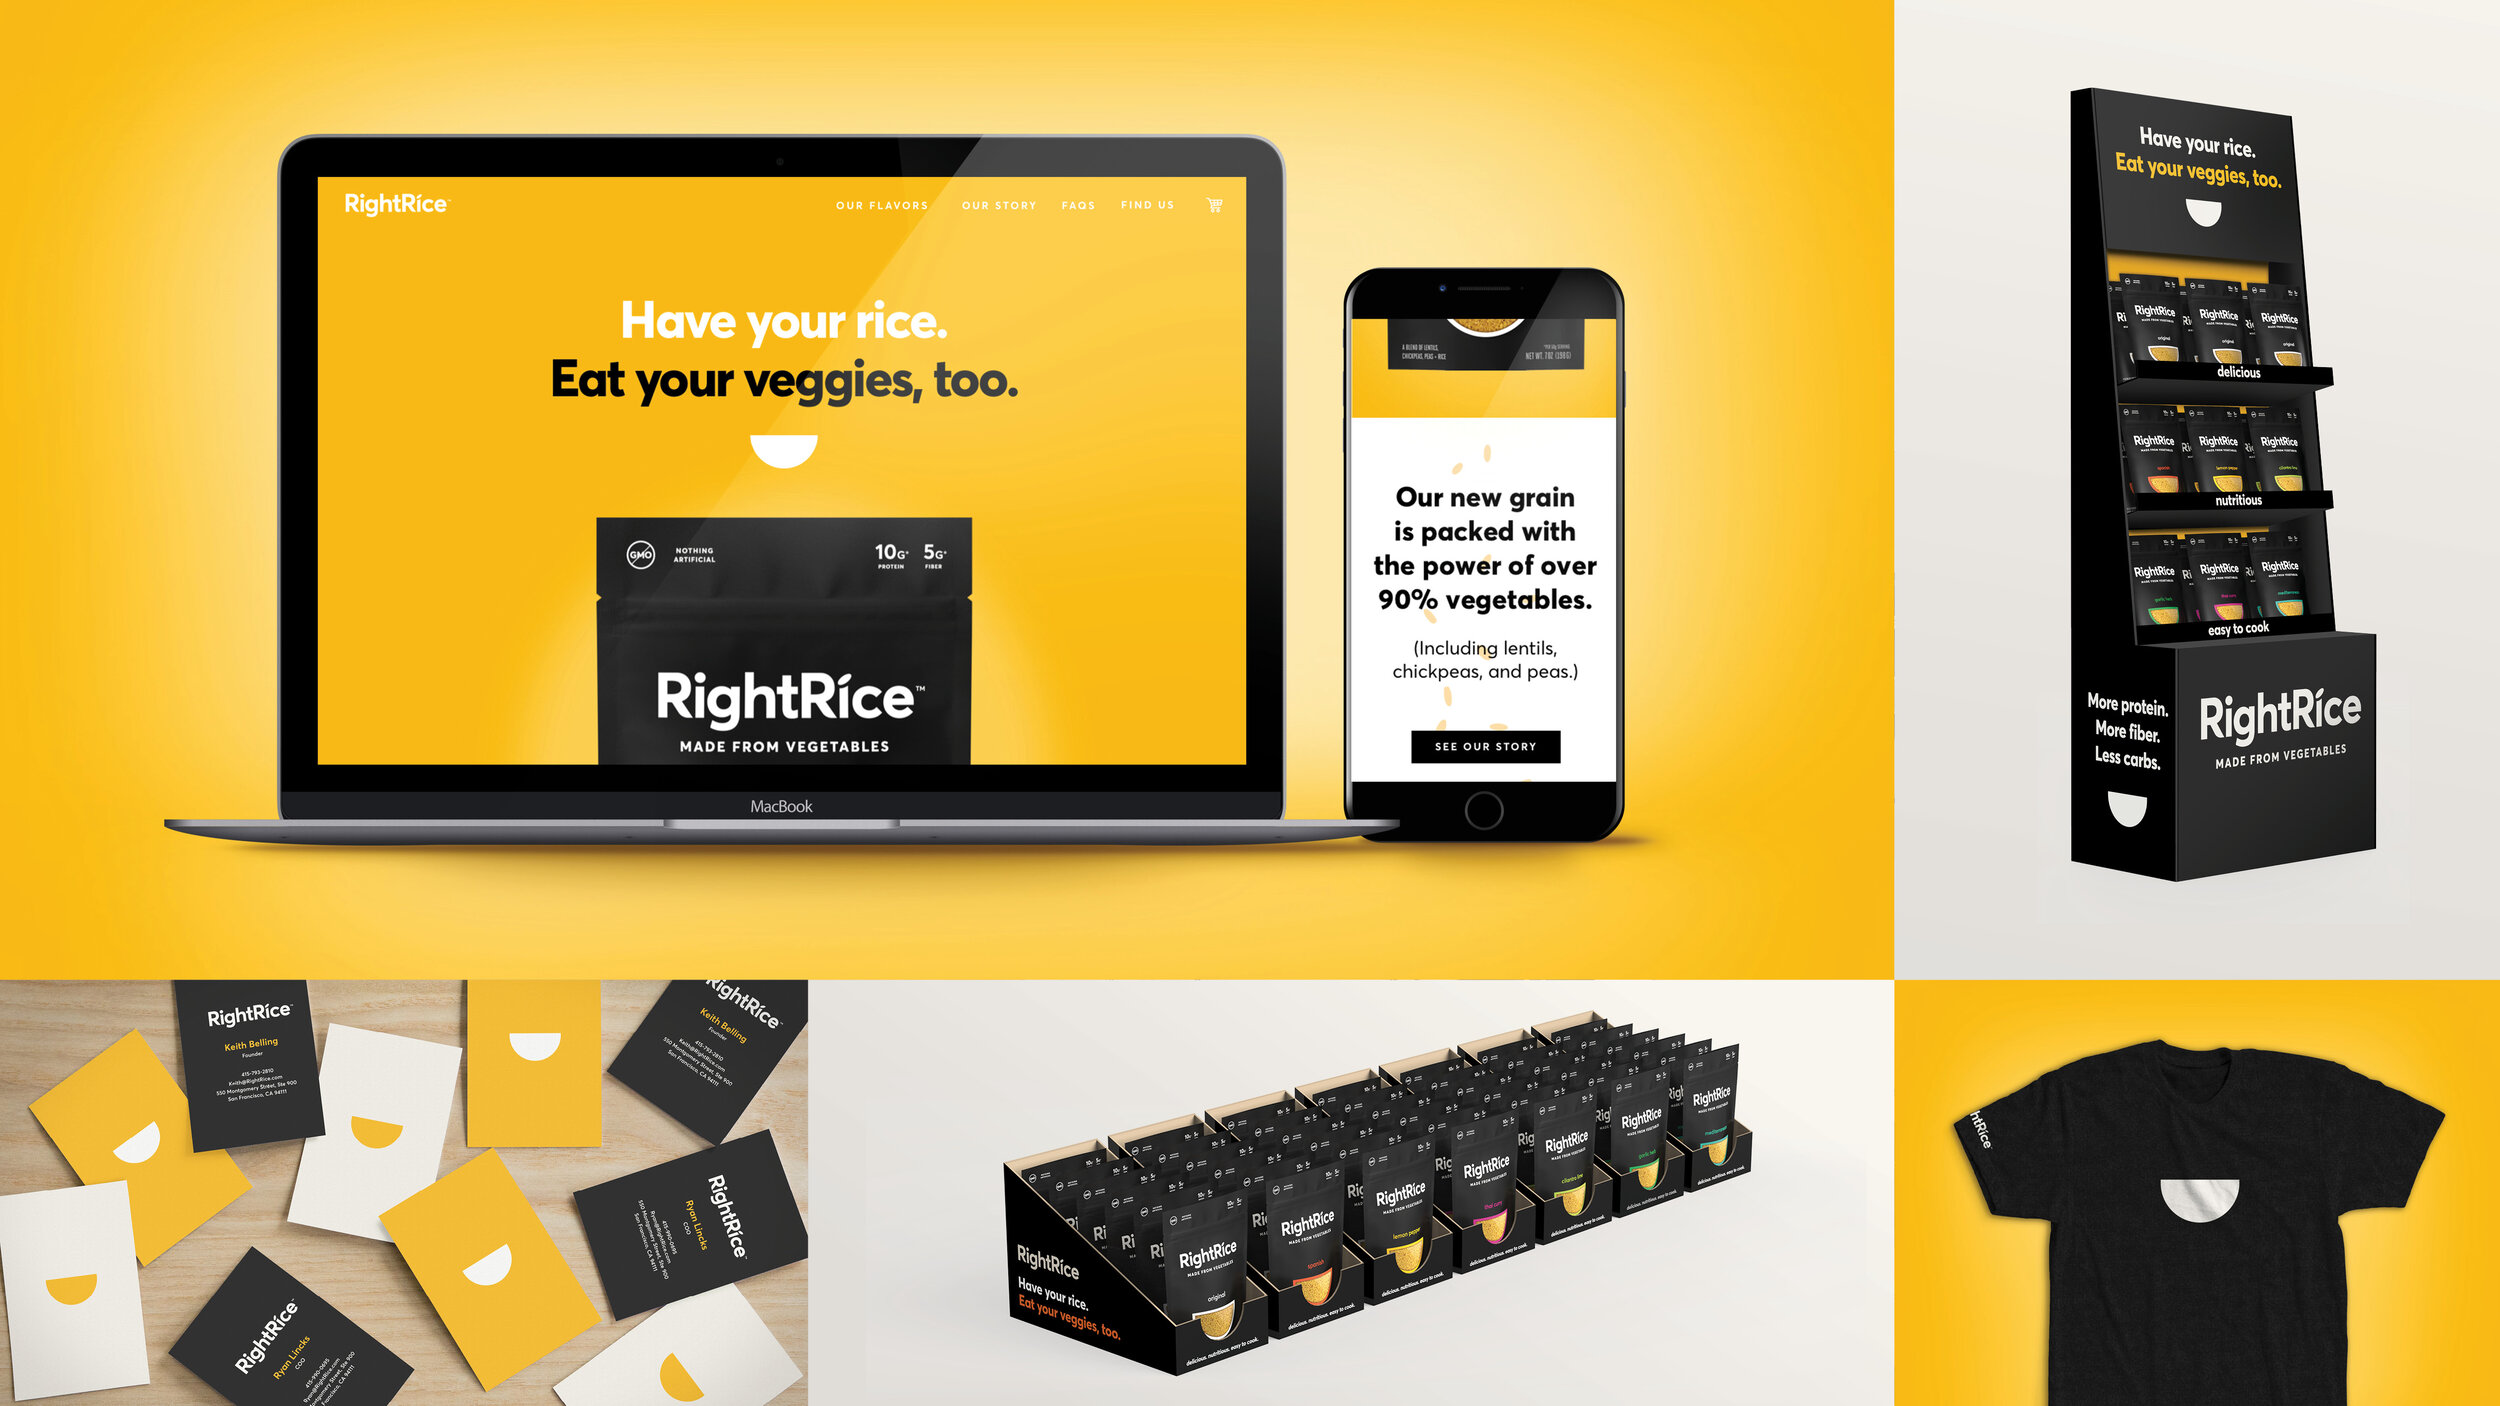 In addition to the visual identity, the team designed RightRice's go-to-market website and initial launch materials.